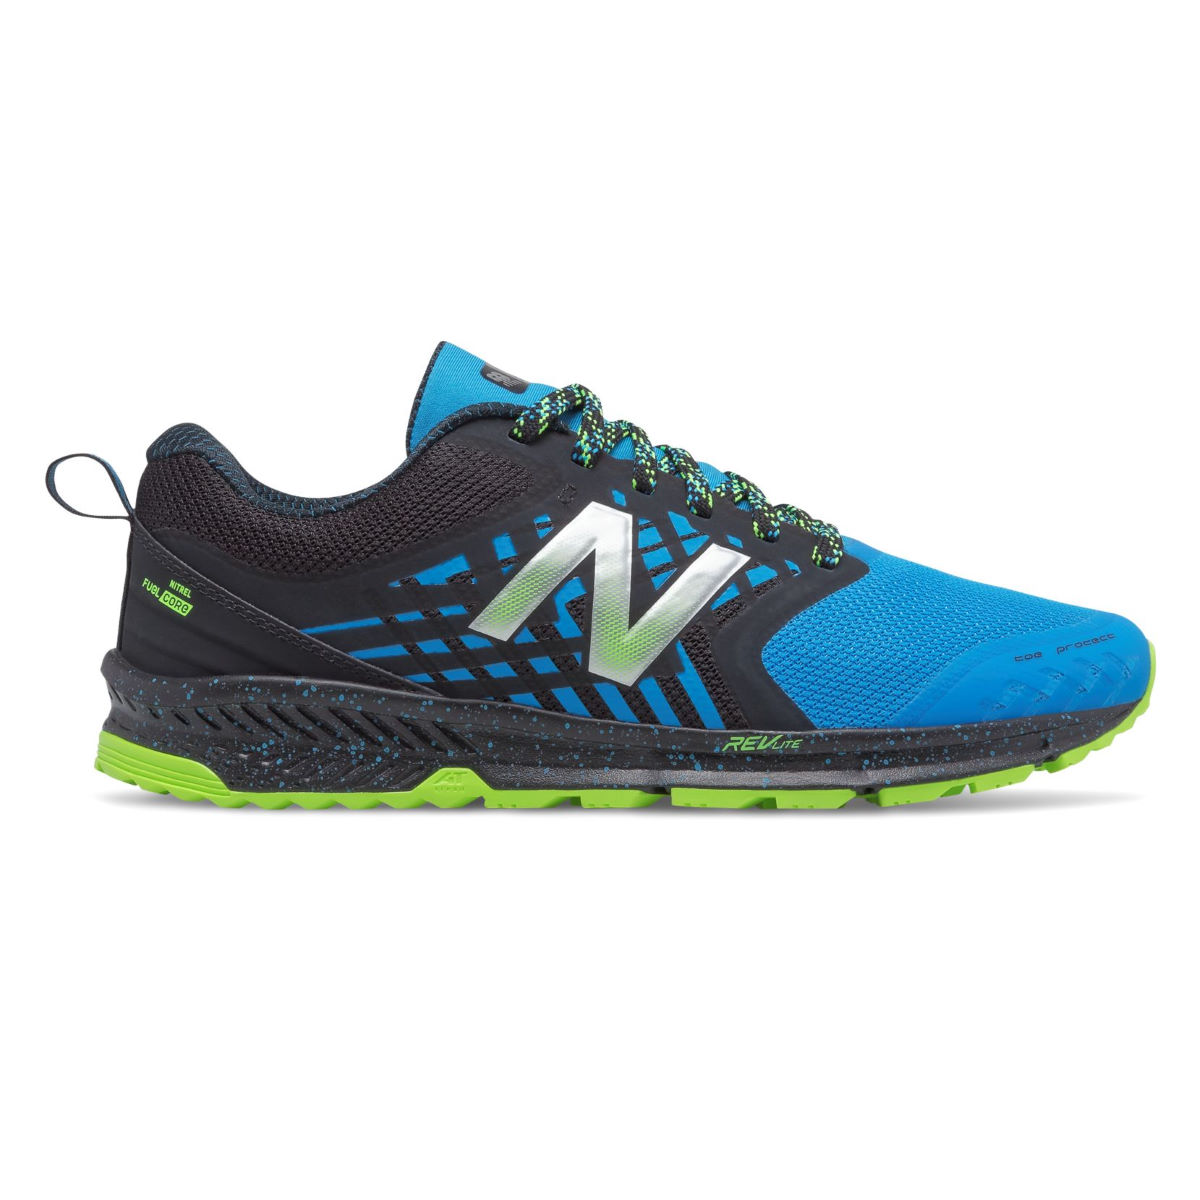 Zapatillas New Balance Fuel Core Nitrel - Zapatillas de trail